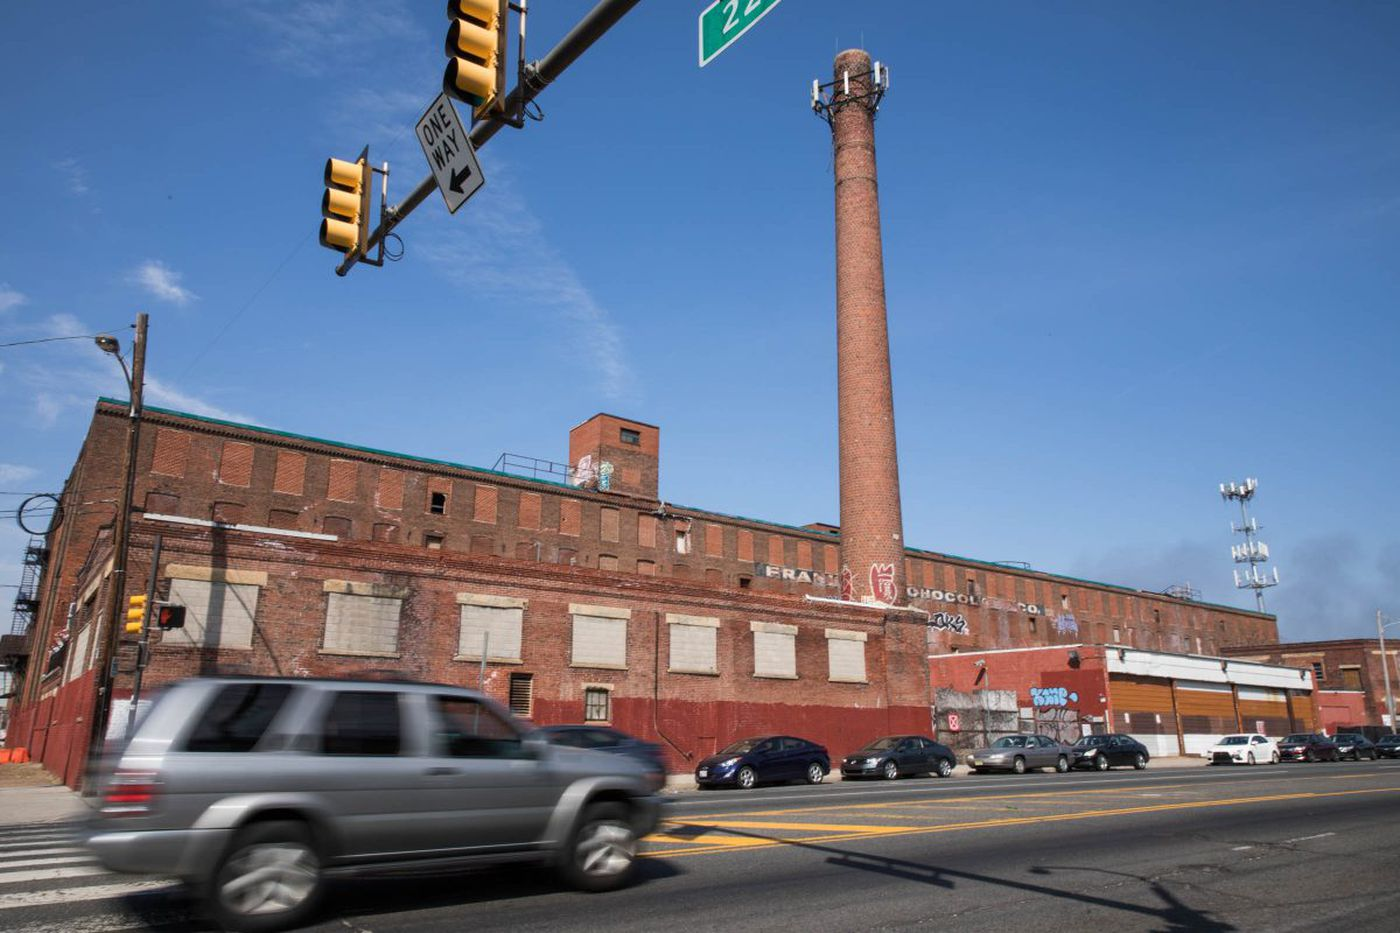 Preservationists seek second opinion on Chocolate Factory building in bid to save structure